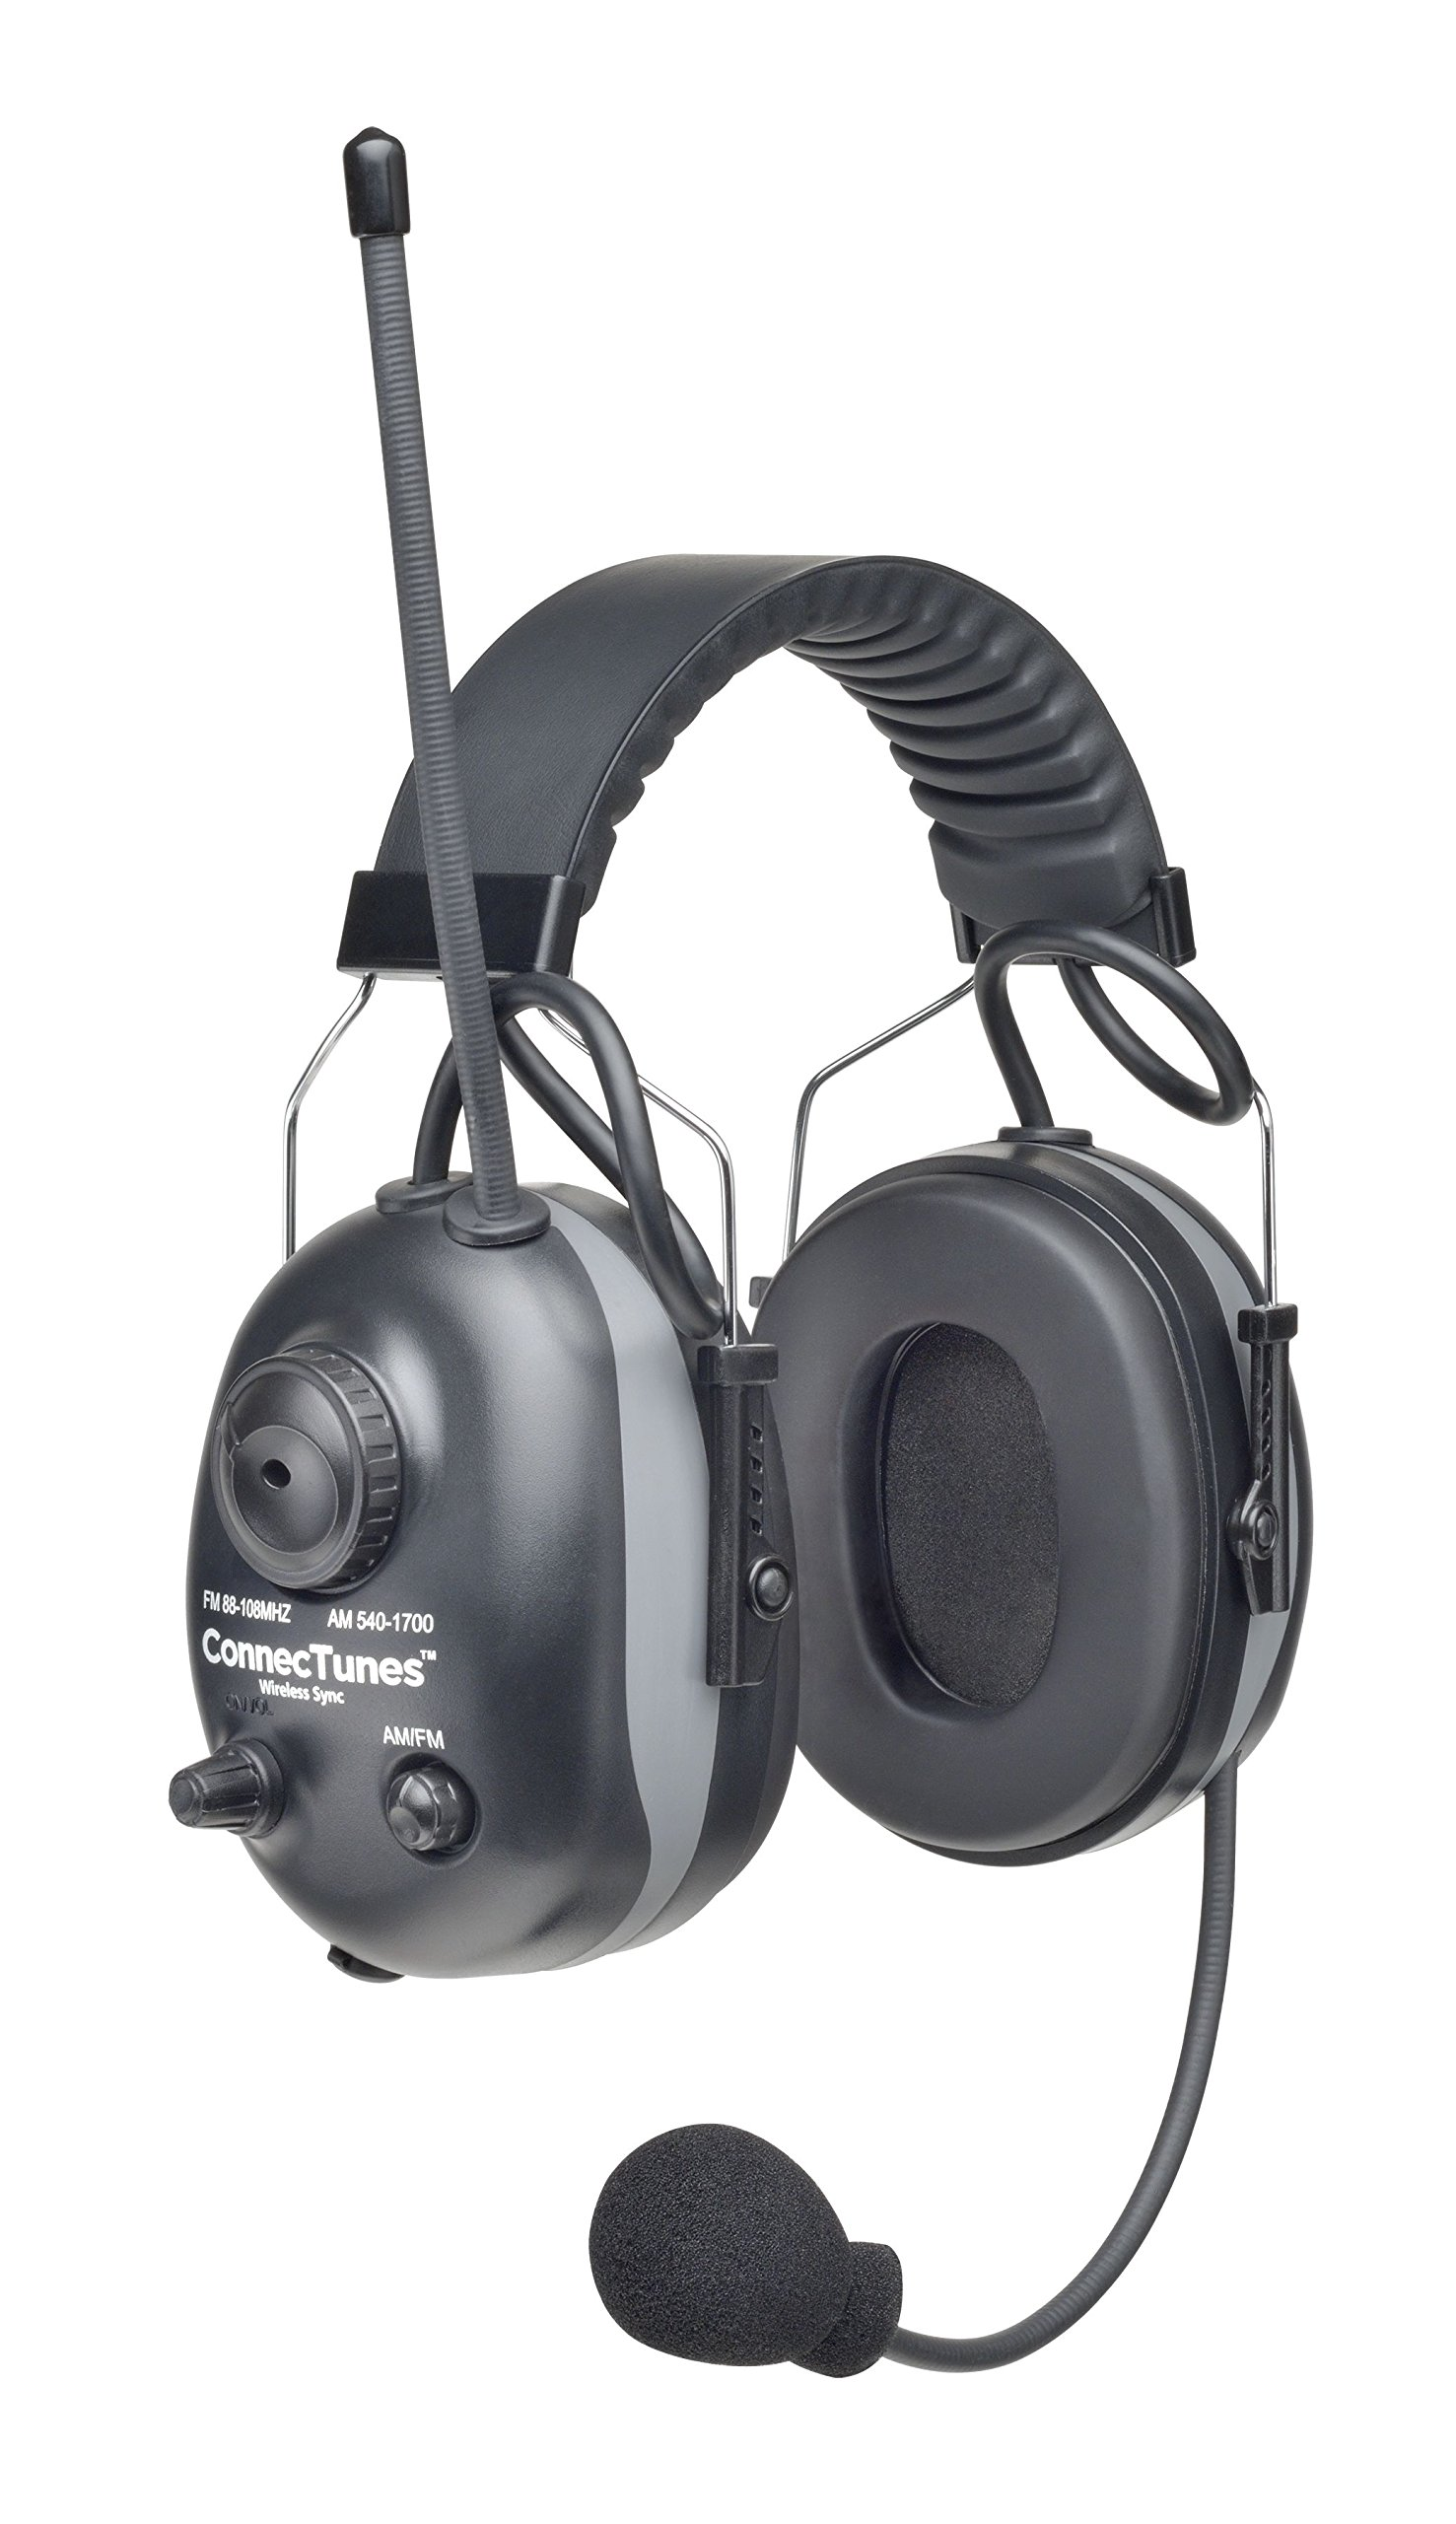 Elvex COM-660W ConnecTunes Wireless Pairing Ear Muff, Black